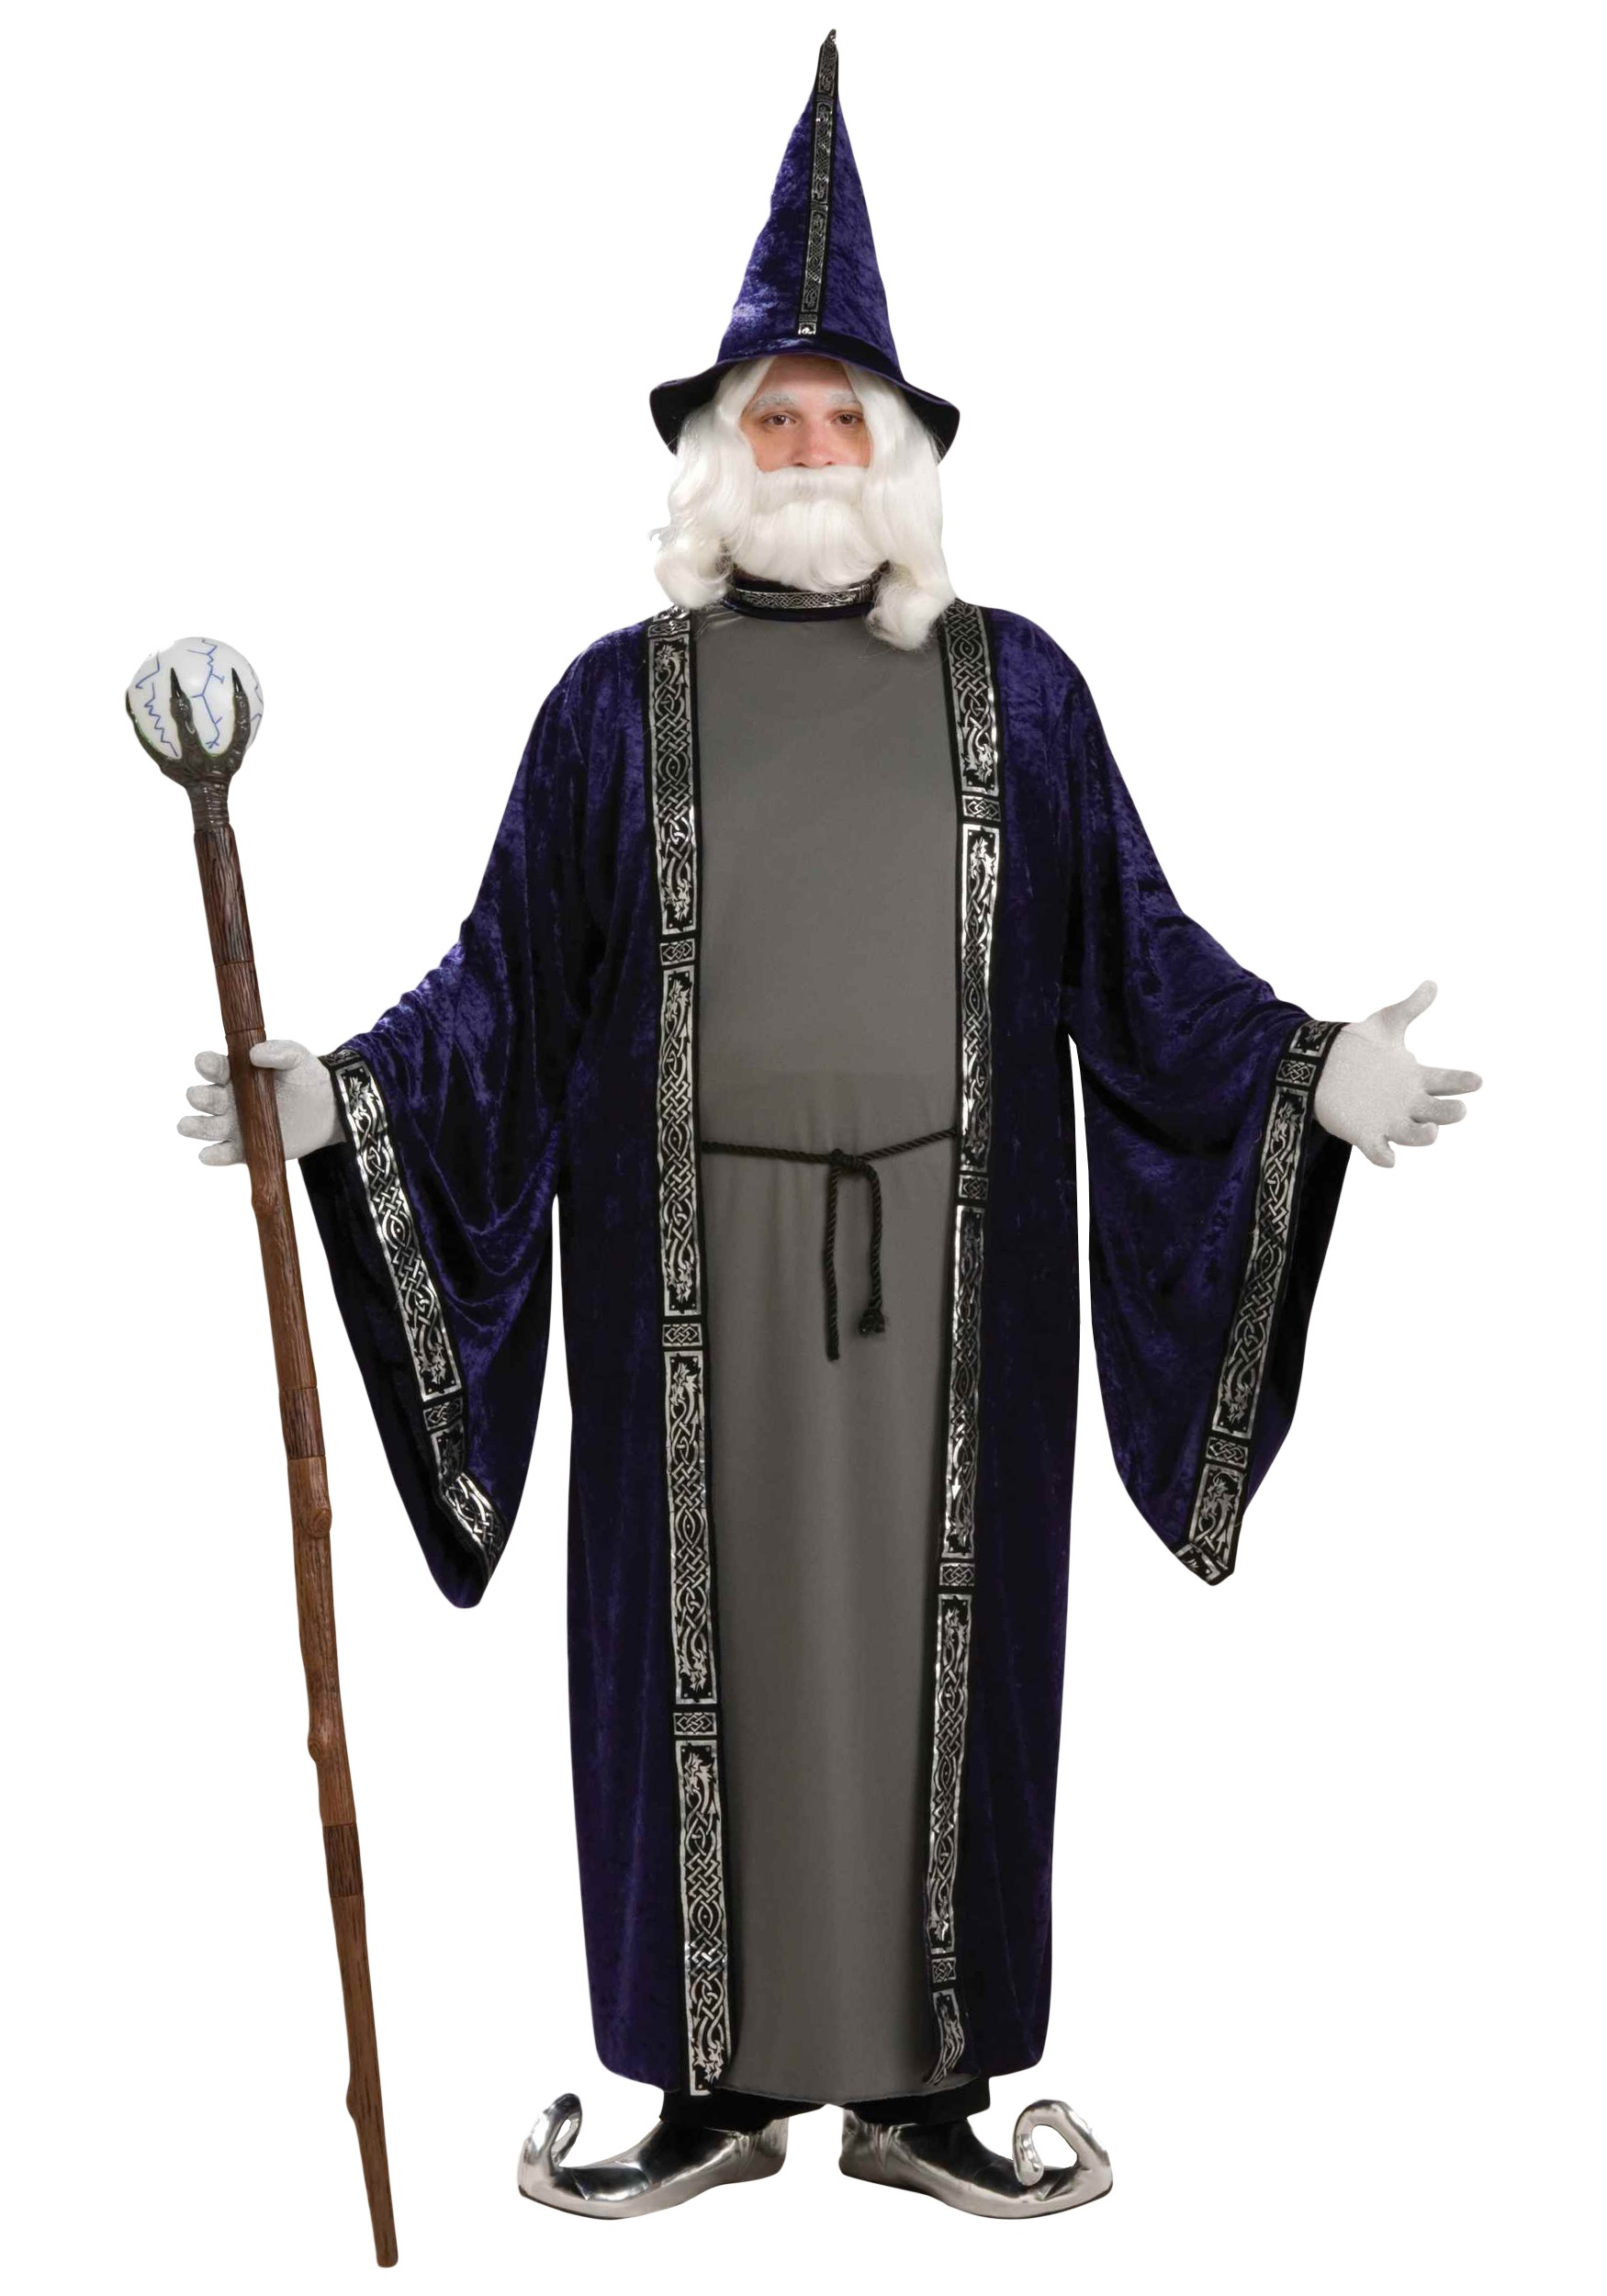 PLUS SIZE WIZARD COSTUME Merlin set for adults men in a plus sizing with robe belt and hat